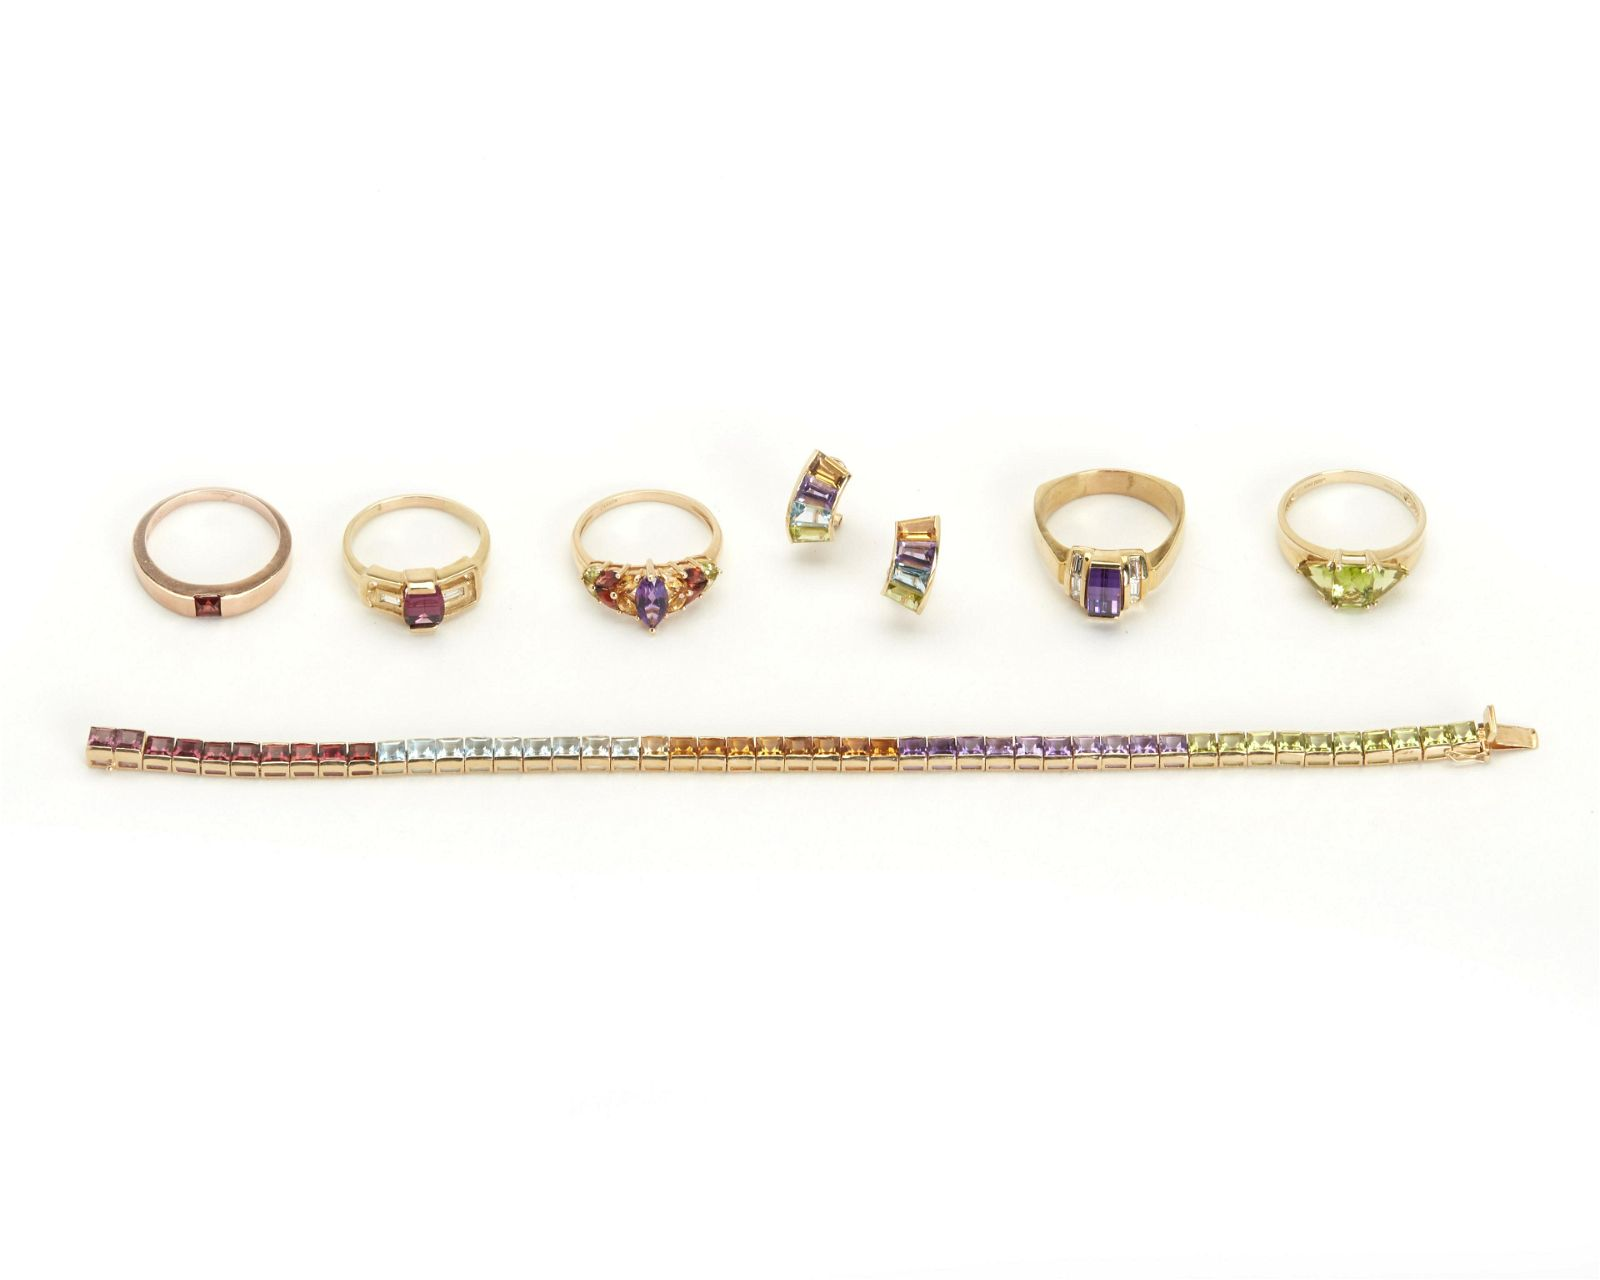 A group of multi-colored gem-set jewelry